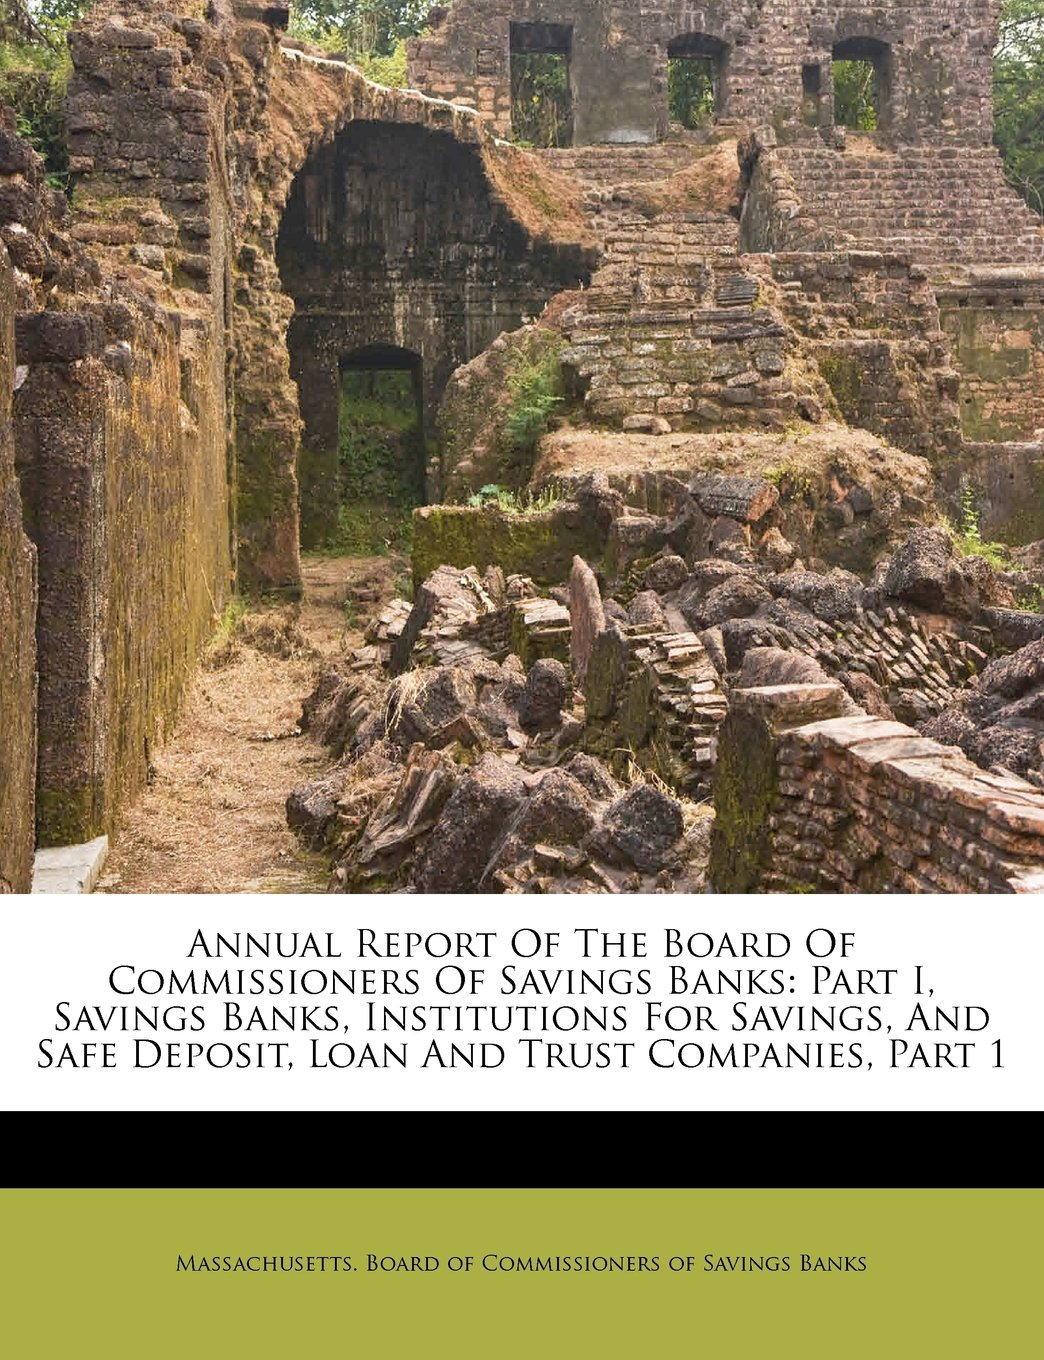 Download Annual Report Of The Board Of Commissioners Of Savings Banks: Part I, Savings Banks, Institutions For Savings, And Safe Deposit, Loan And Trust Companies, Part 1 ebook